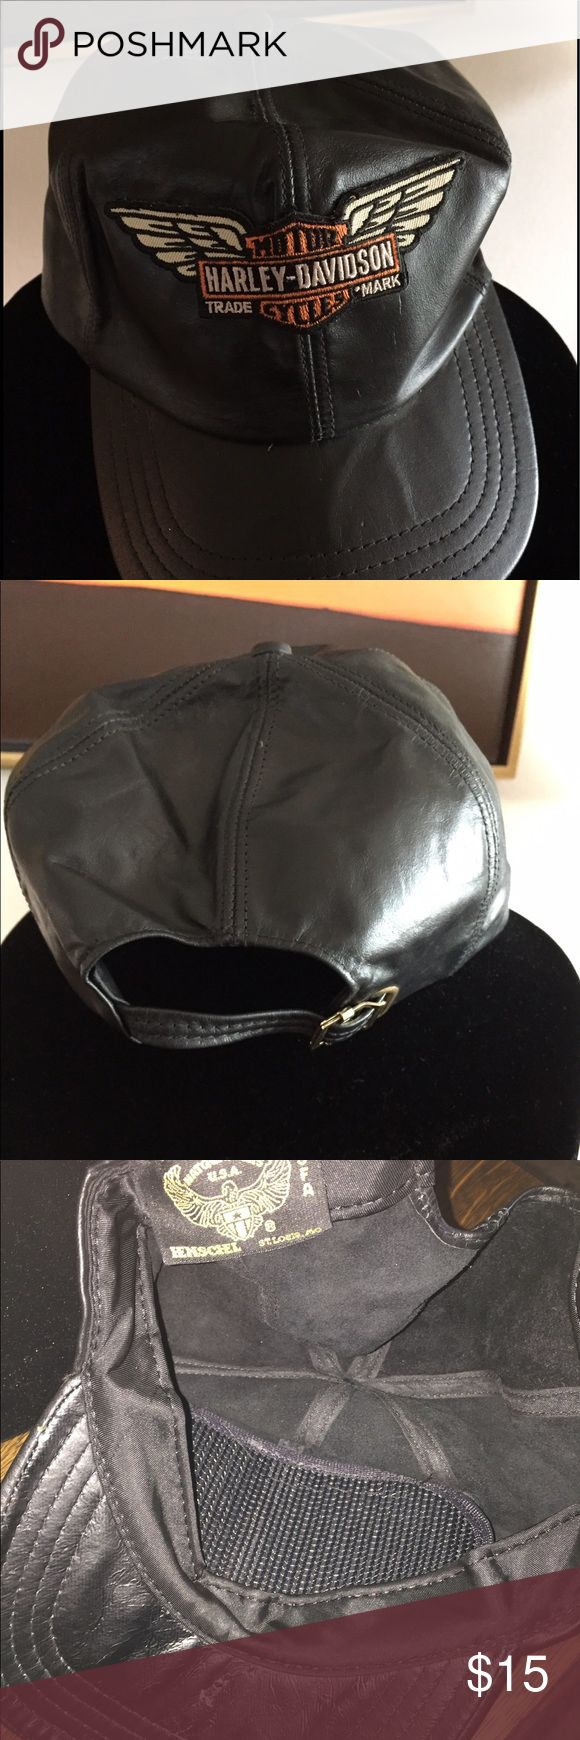 Leather hat with Harley Davison patch Leather hat with Harley Davidson patch bill has some damage to the inside. See photo Accessories Hats